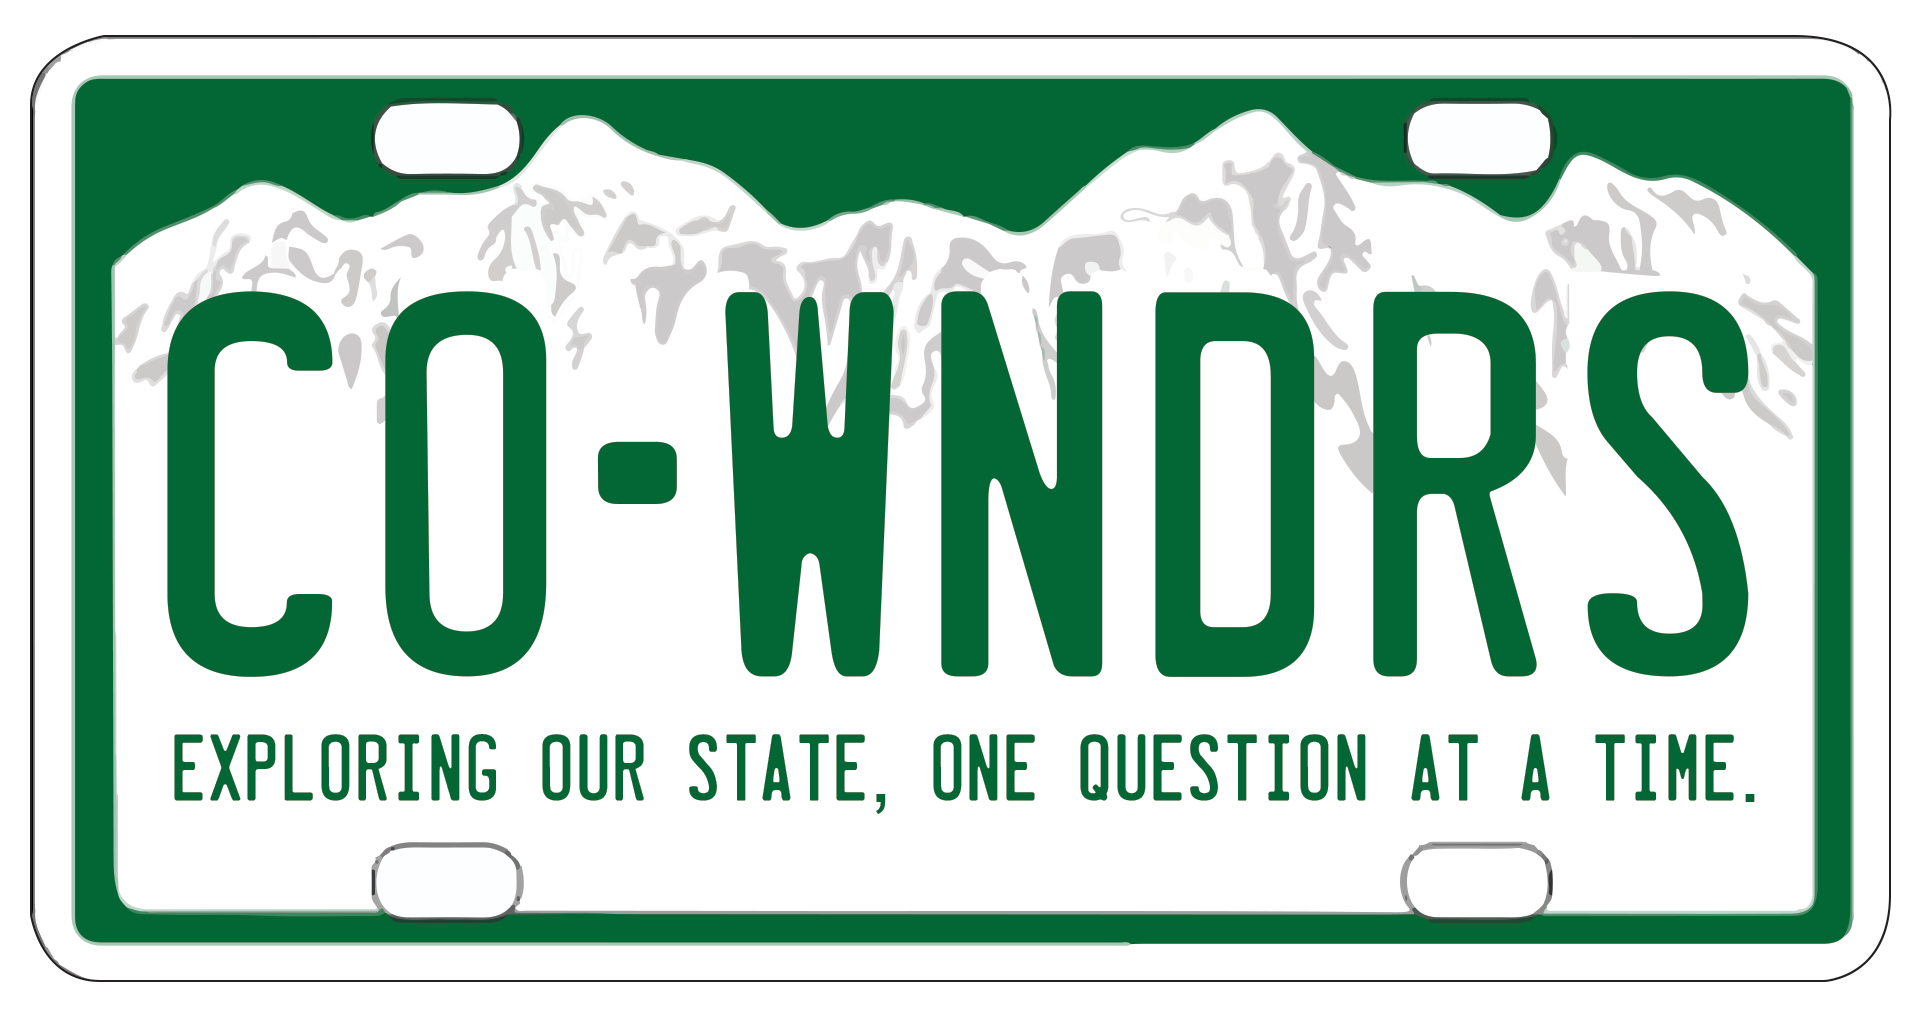 Graphic: Colorado Wonders logo